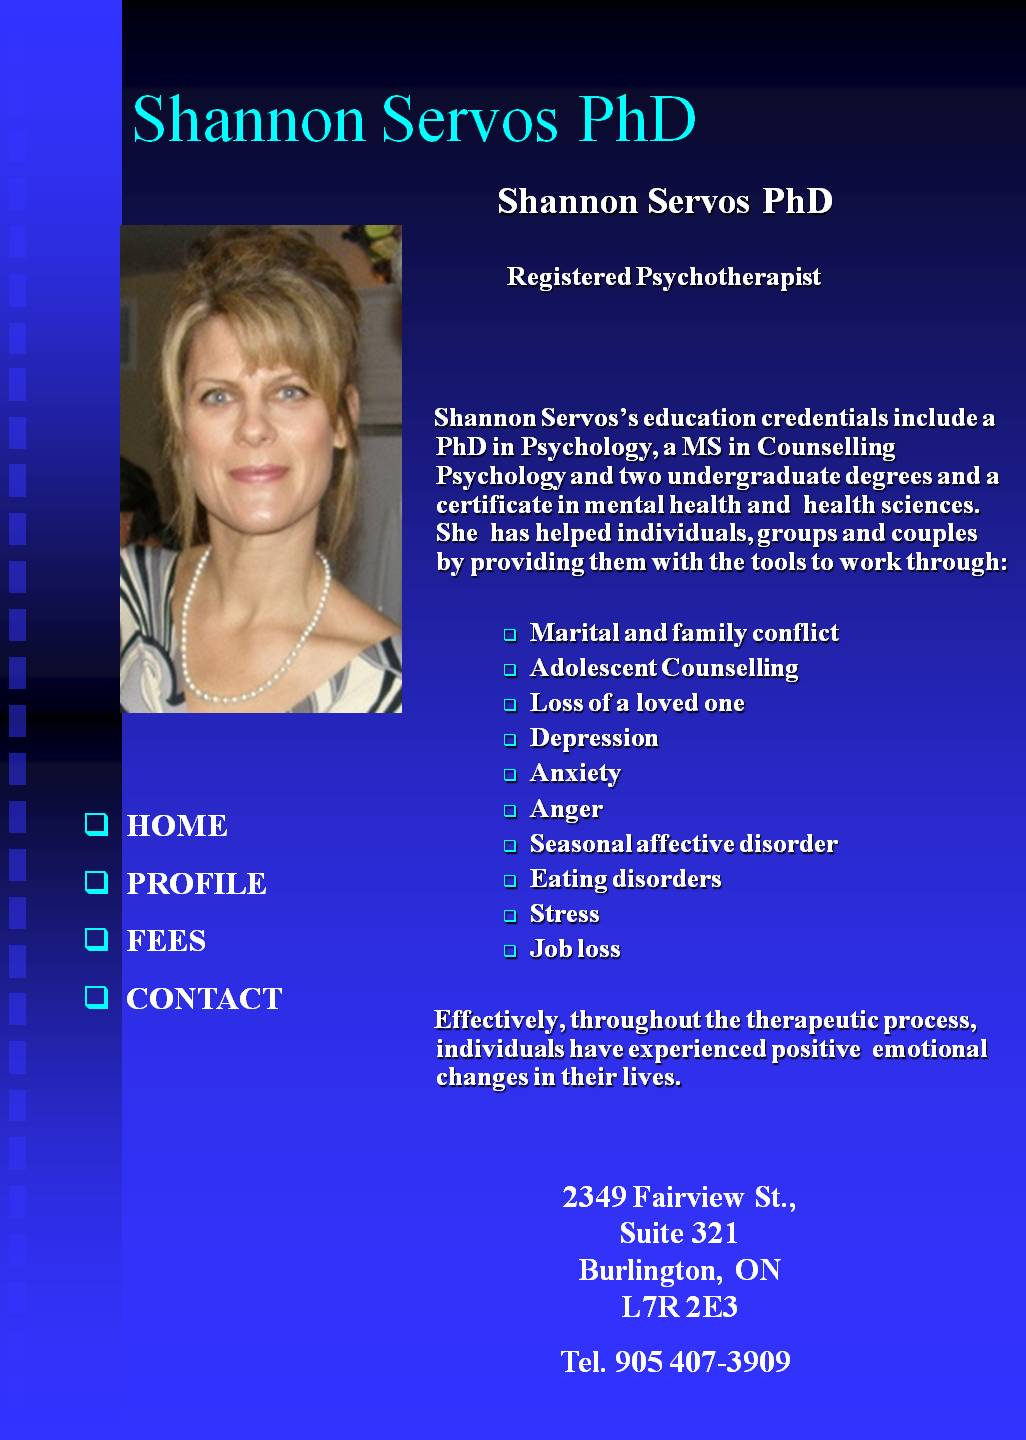 Shannon Servos PhD, Registered Psychocherapist, specializing in Individual, Family and Group Therapy, Counseling Services and Consultations. Burlington, Ontario, Canada, marital family conflict, adolescent counselling, depression, anxiety, anger, seasonal affective disorder, eating disorders, stress, job loss,          http://www.theravive.com/therapists/shannon-servos.aspx